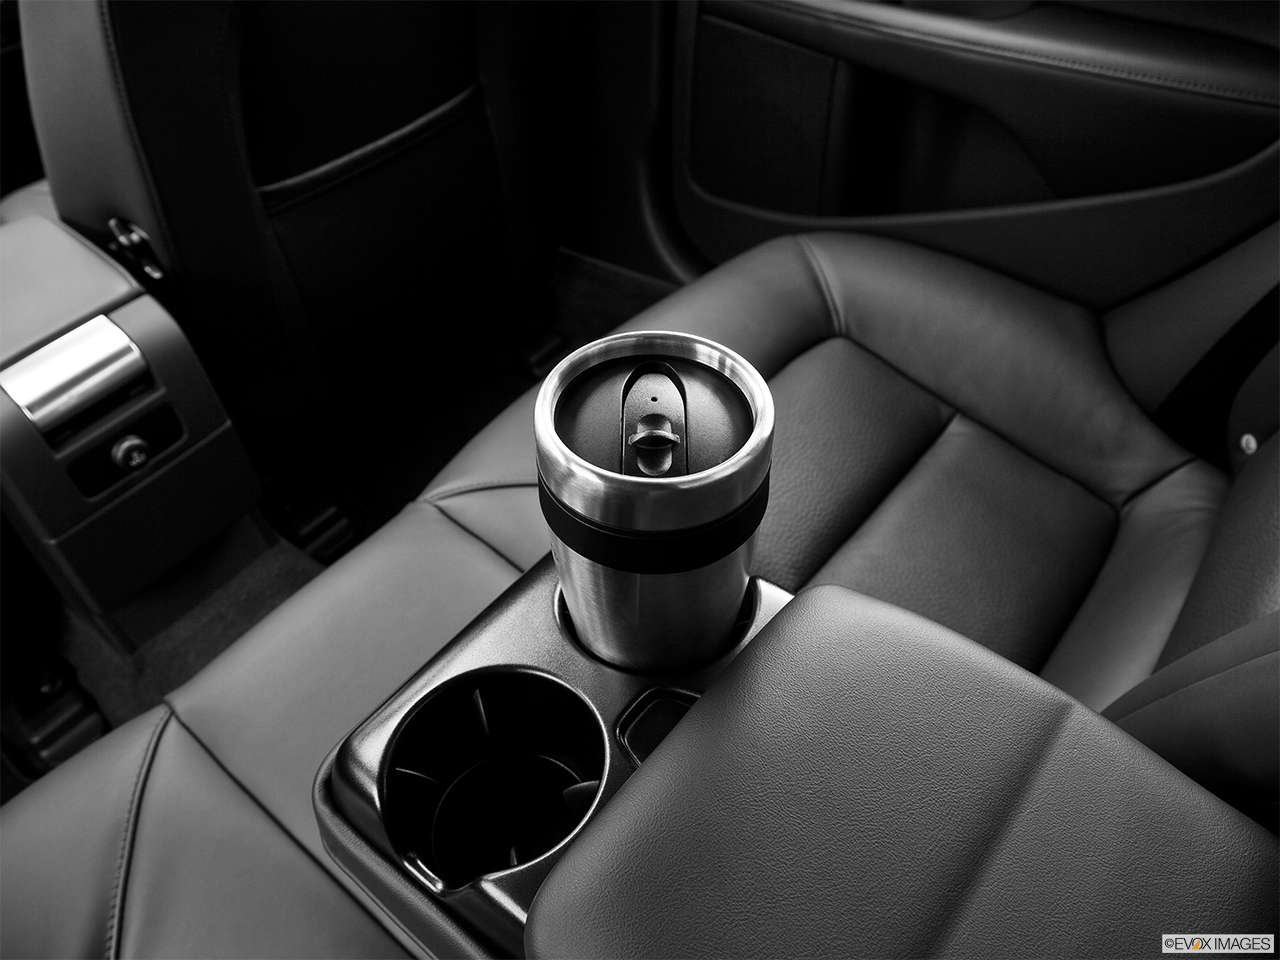 2013 Volvo S80 3.2 Platinum Third Row center cup holder with coffee prop.